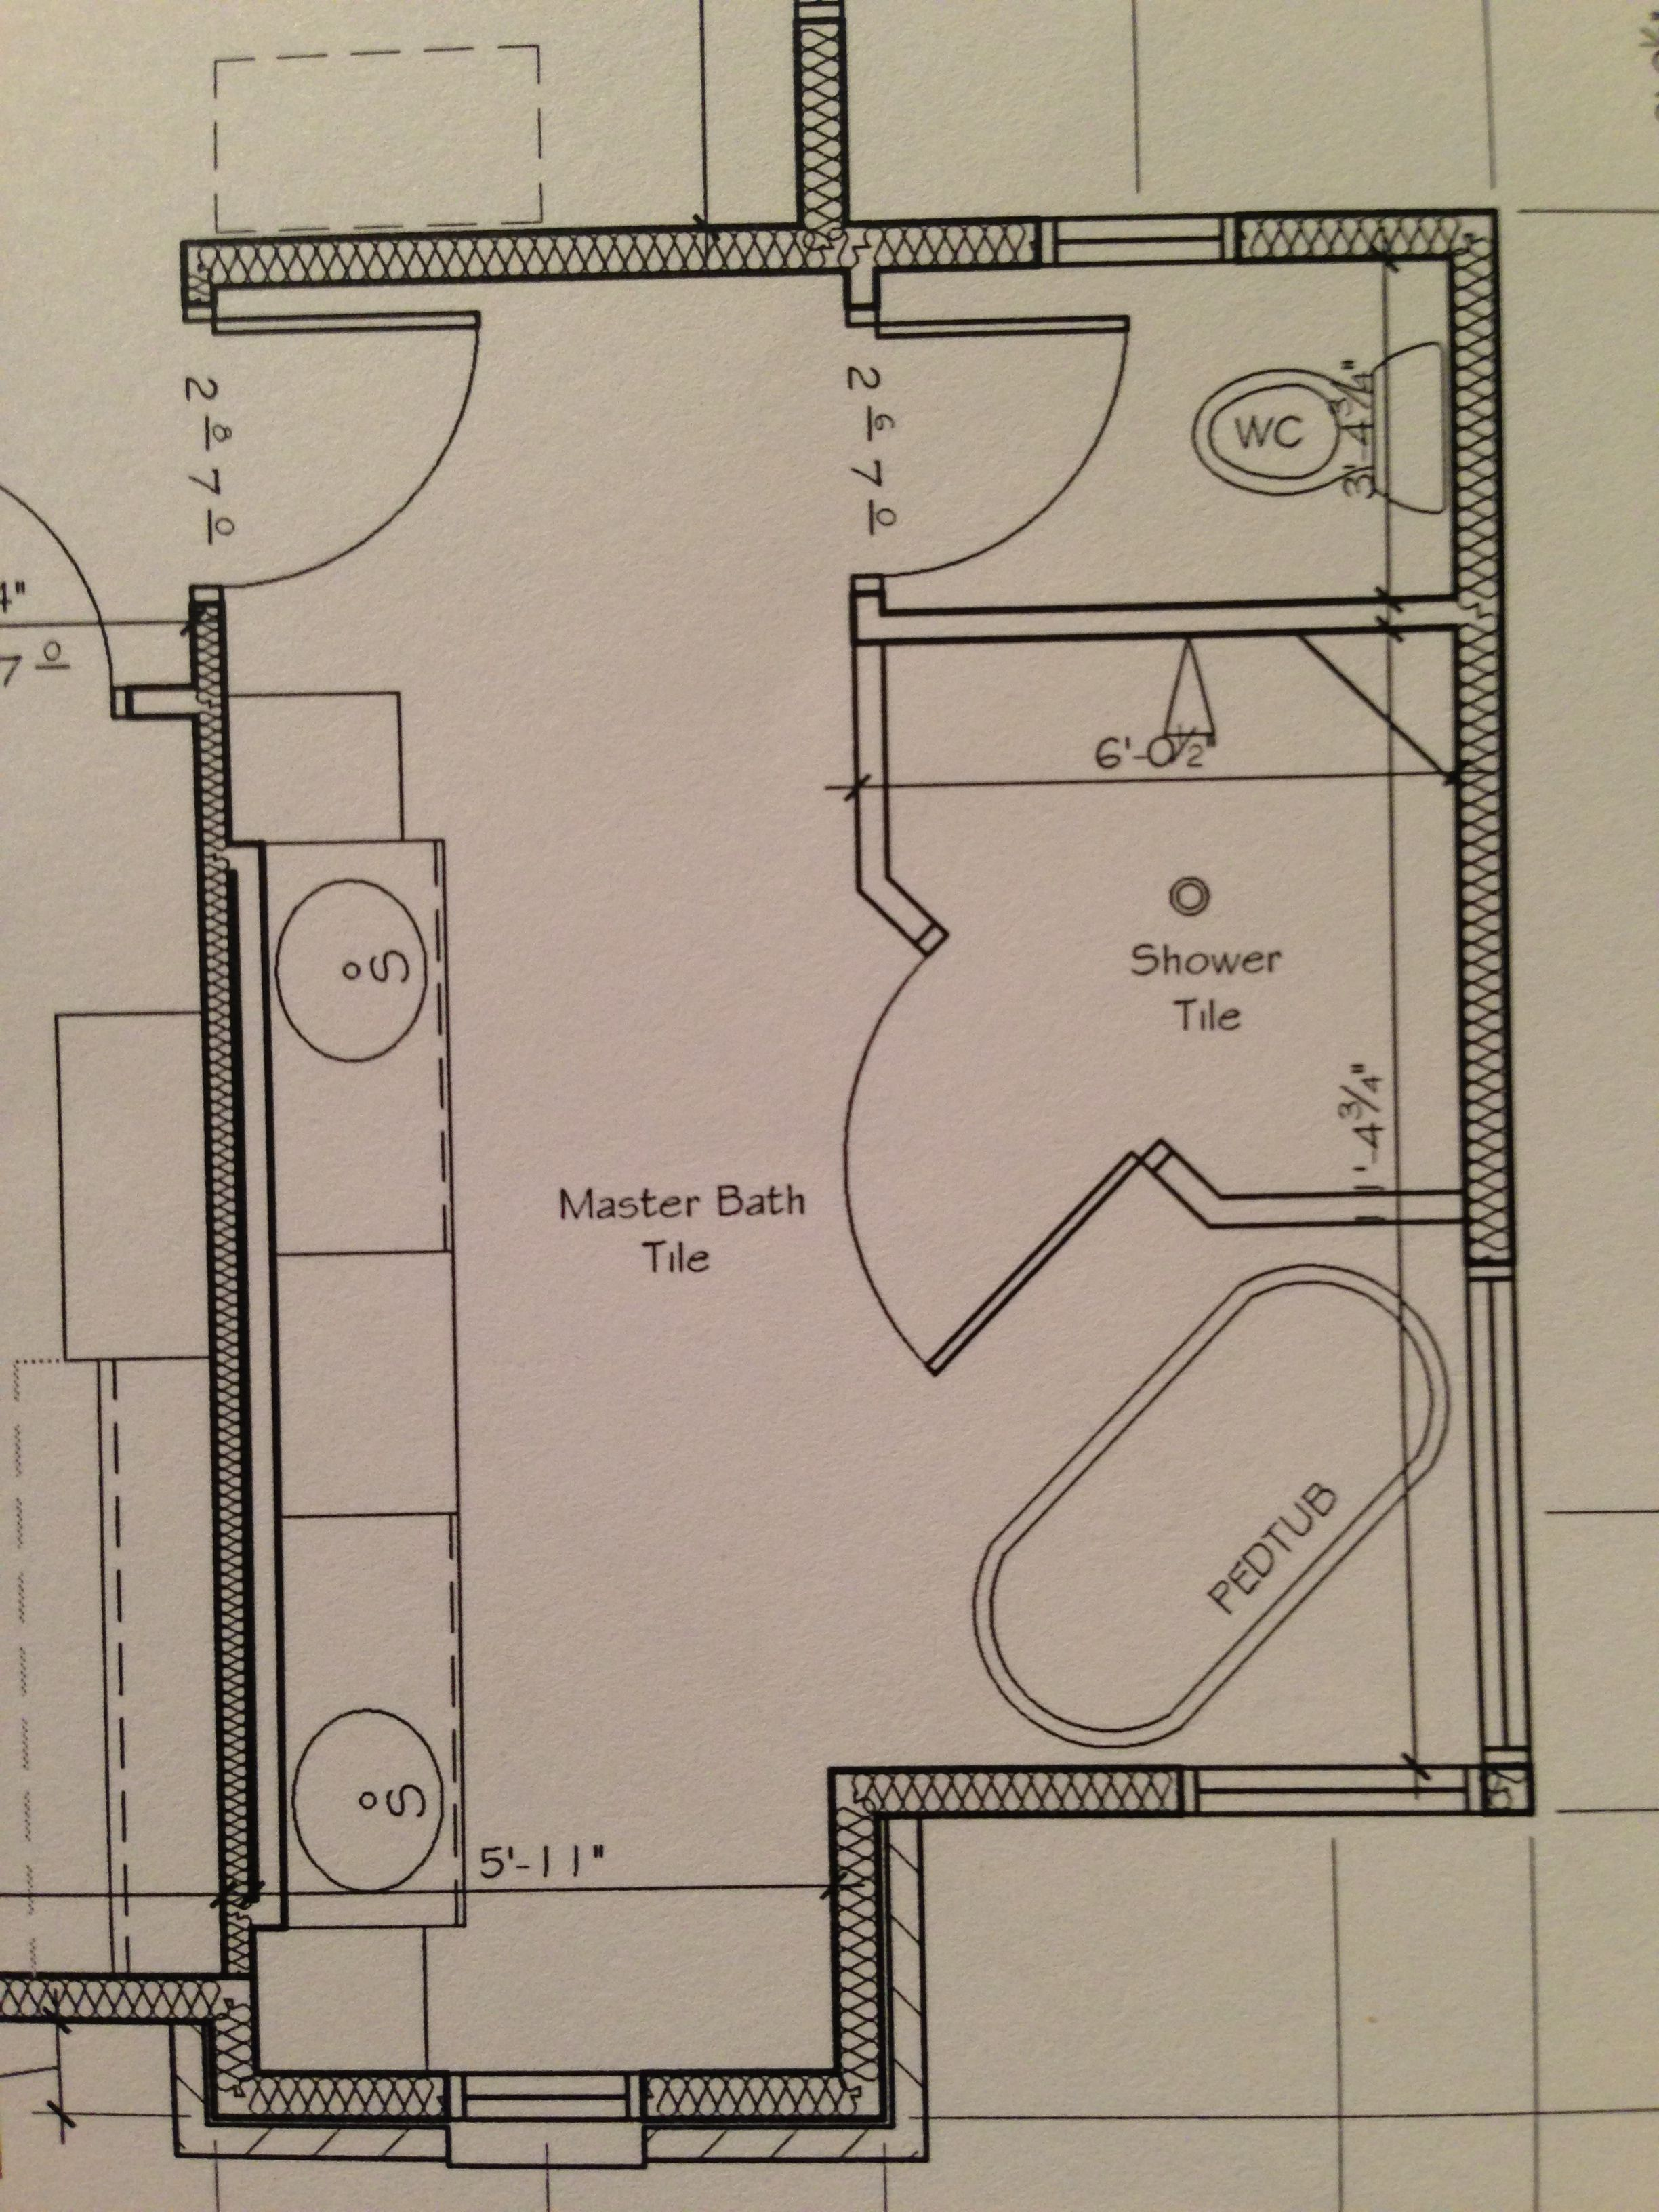 Make sure to plan for towel bars in Bath floor plan and reinforce that area with wood before